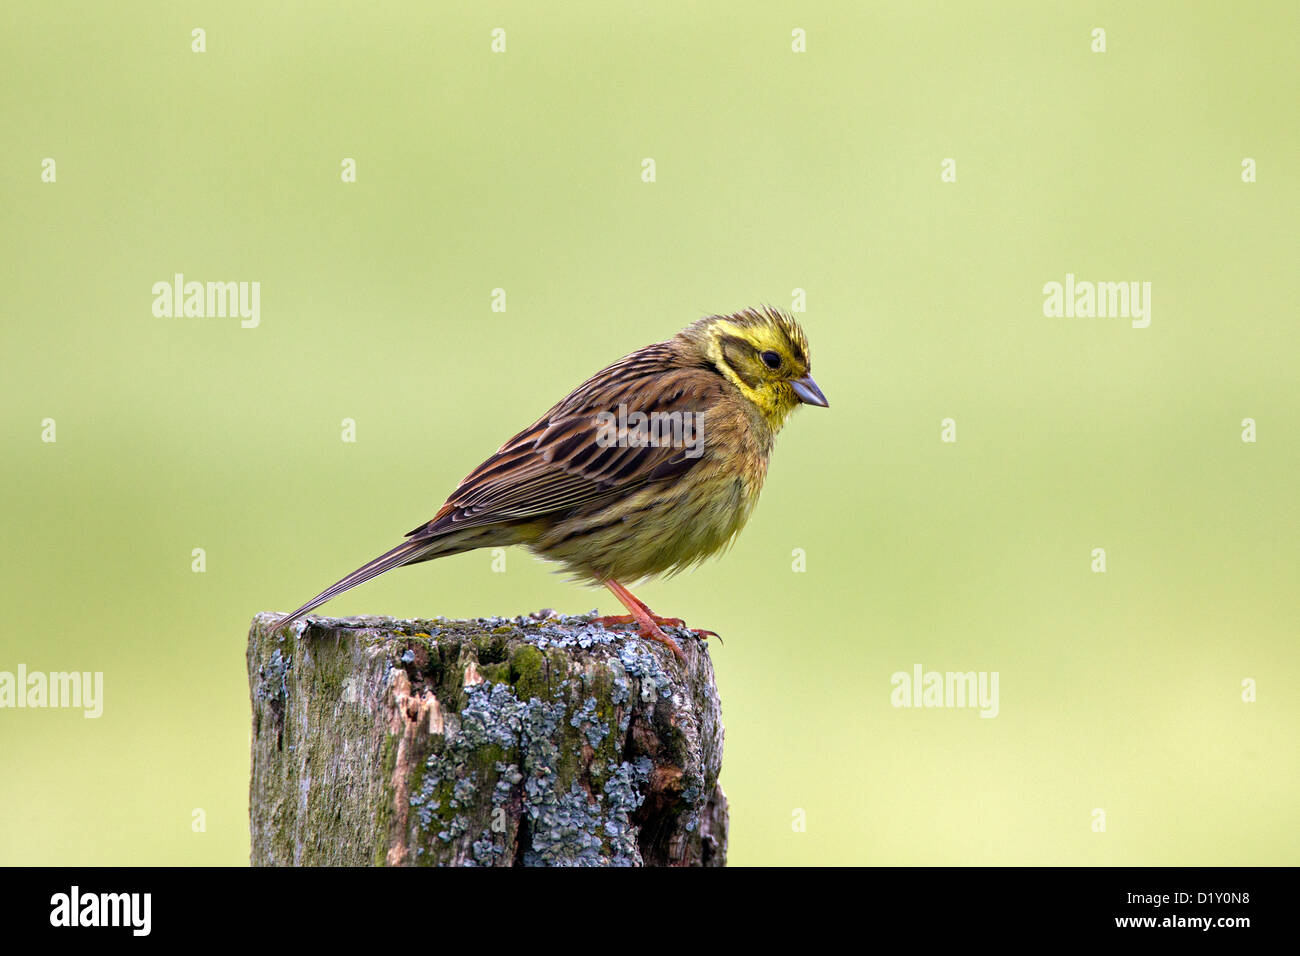 Yellowhammer (Emberiza citrinella) female perched on fence post in field - Stock Image